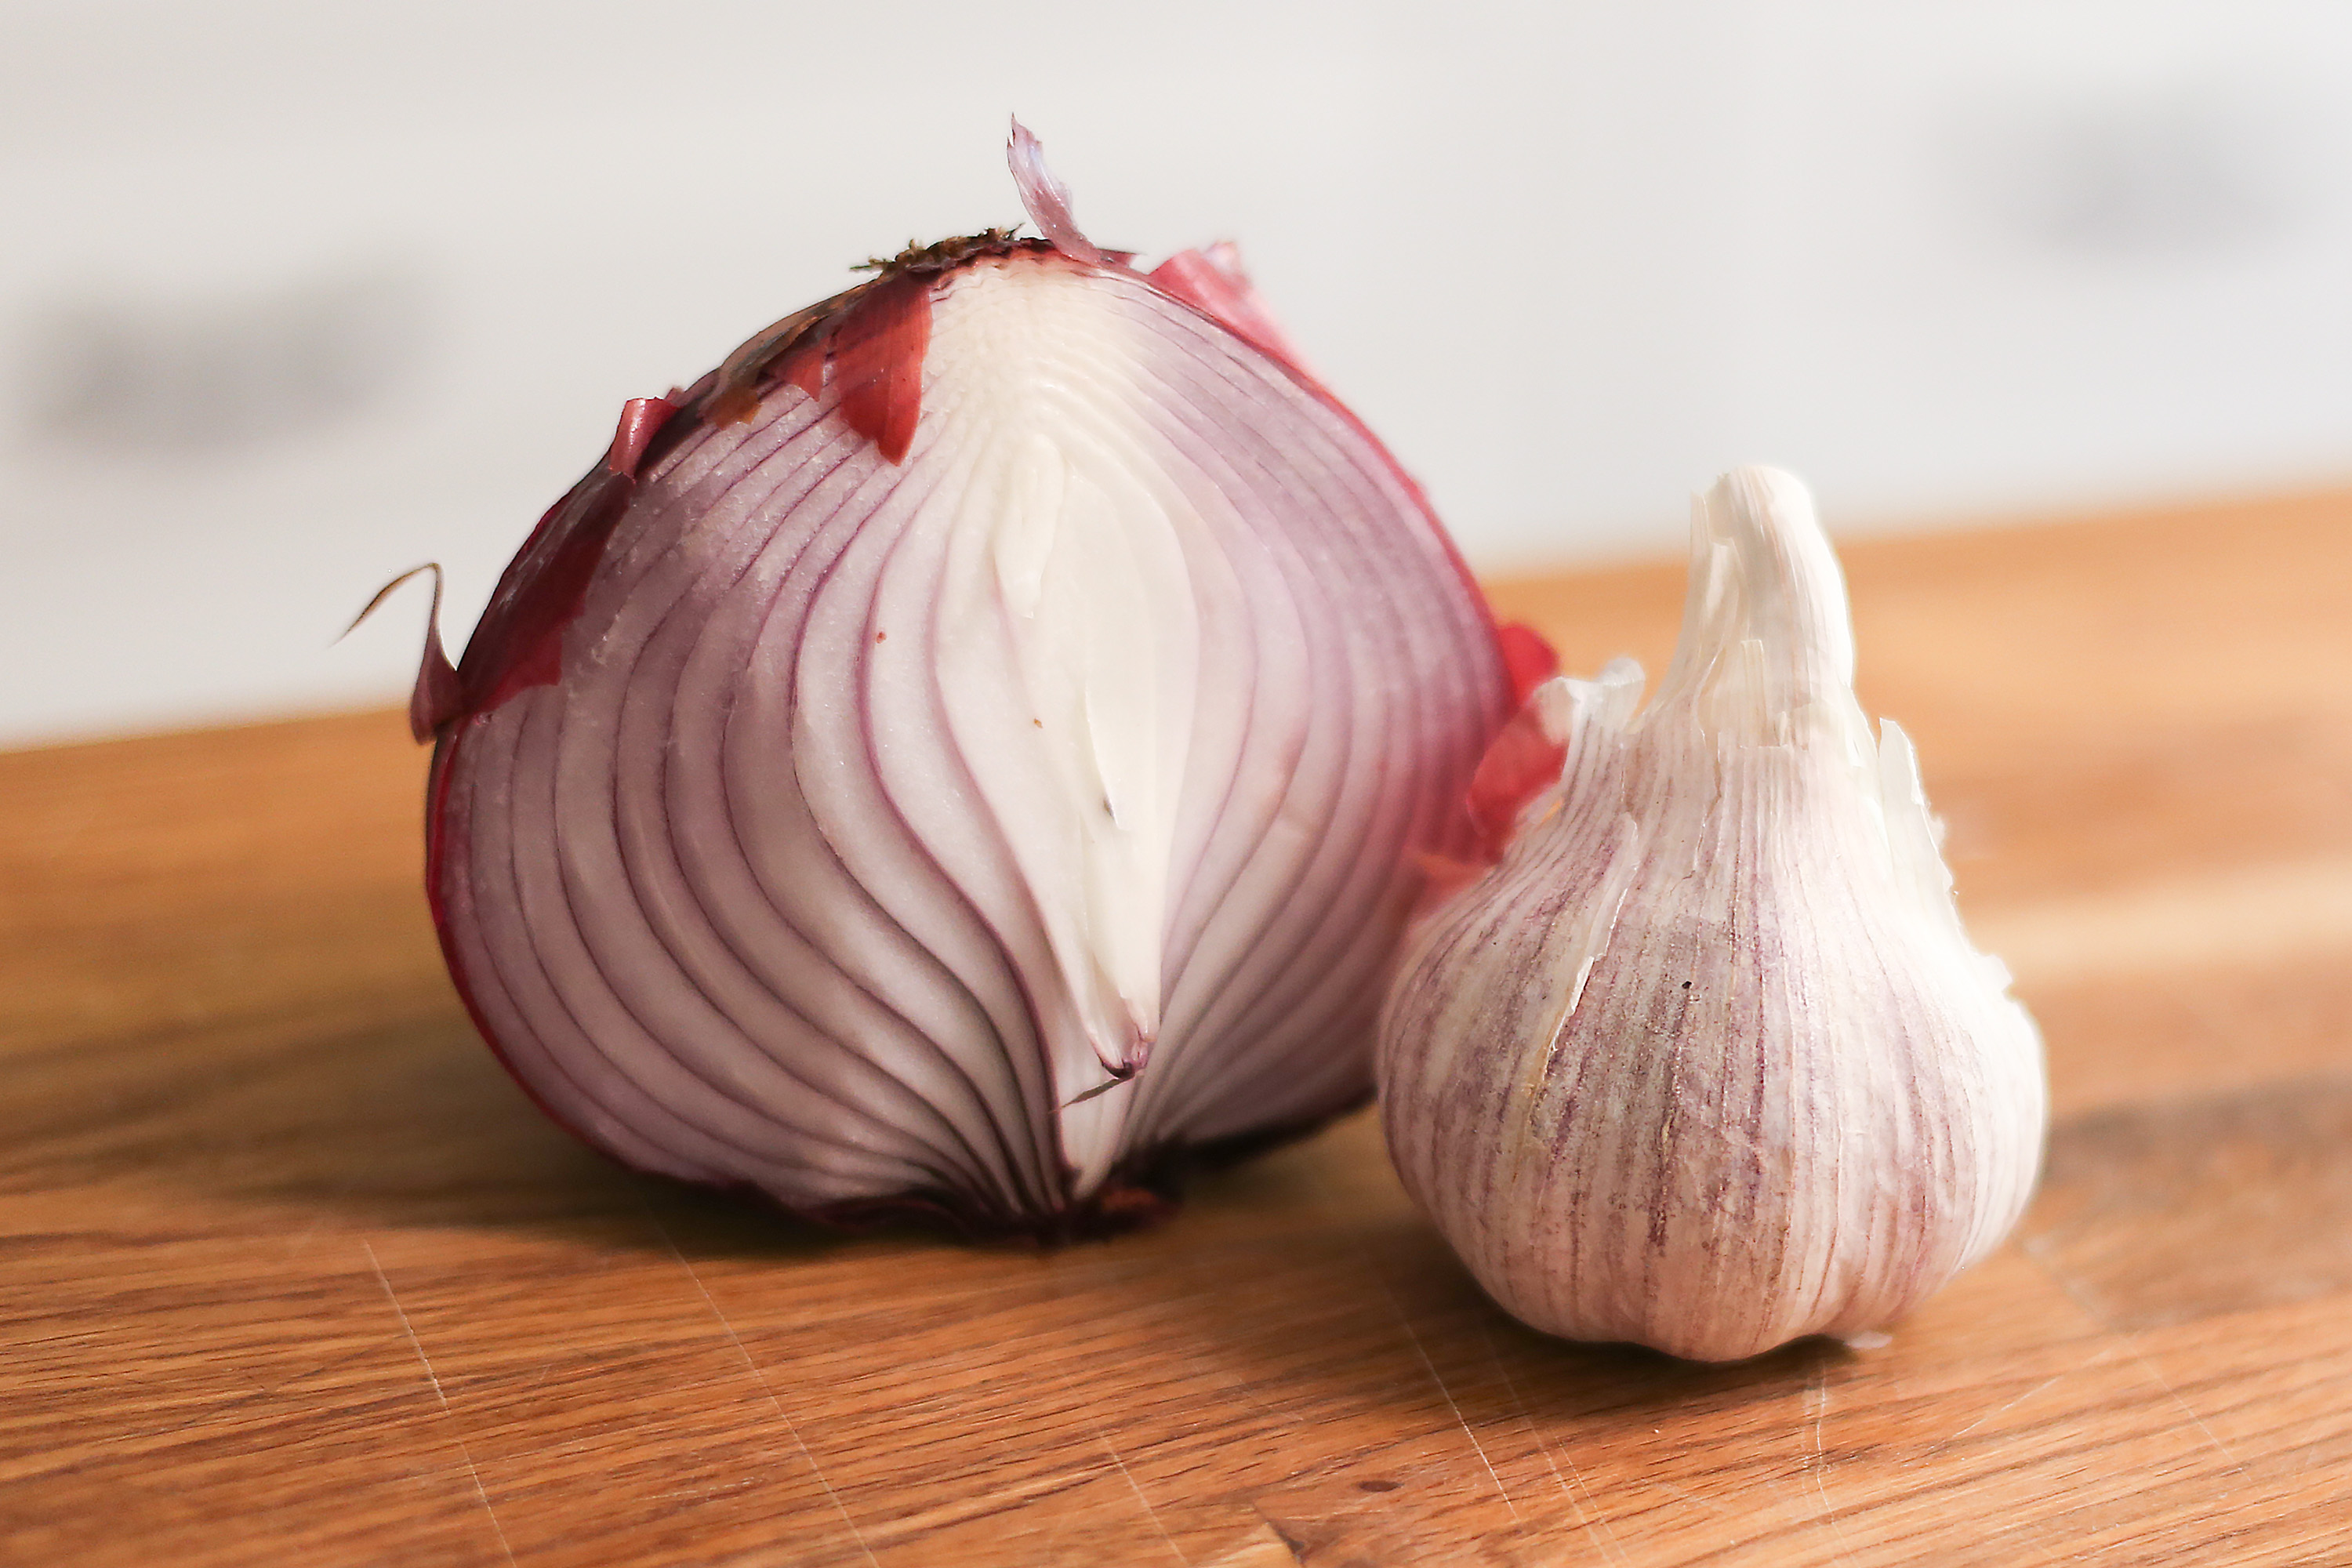 Is garlic toxic to dogs?